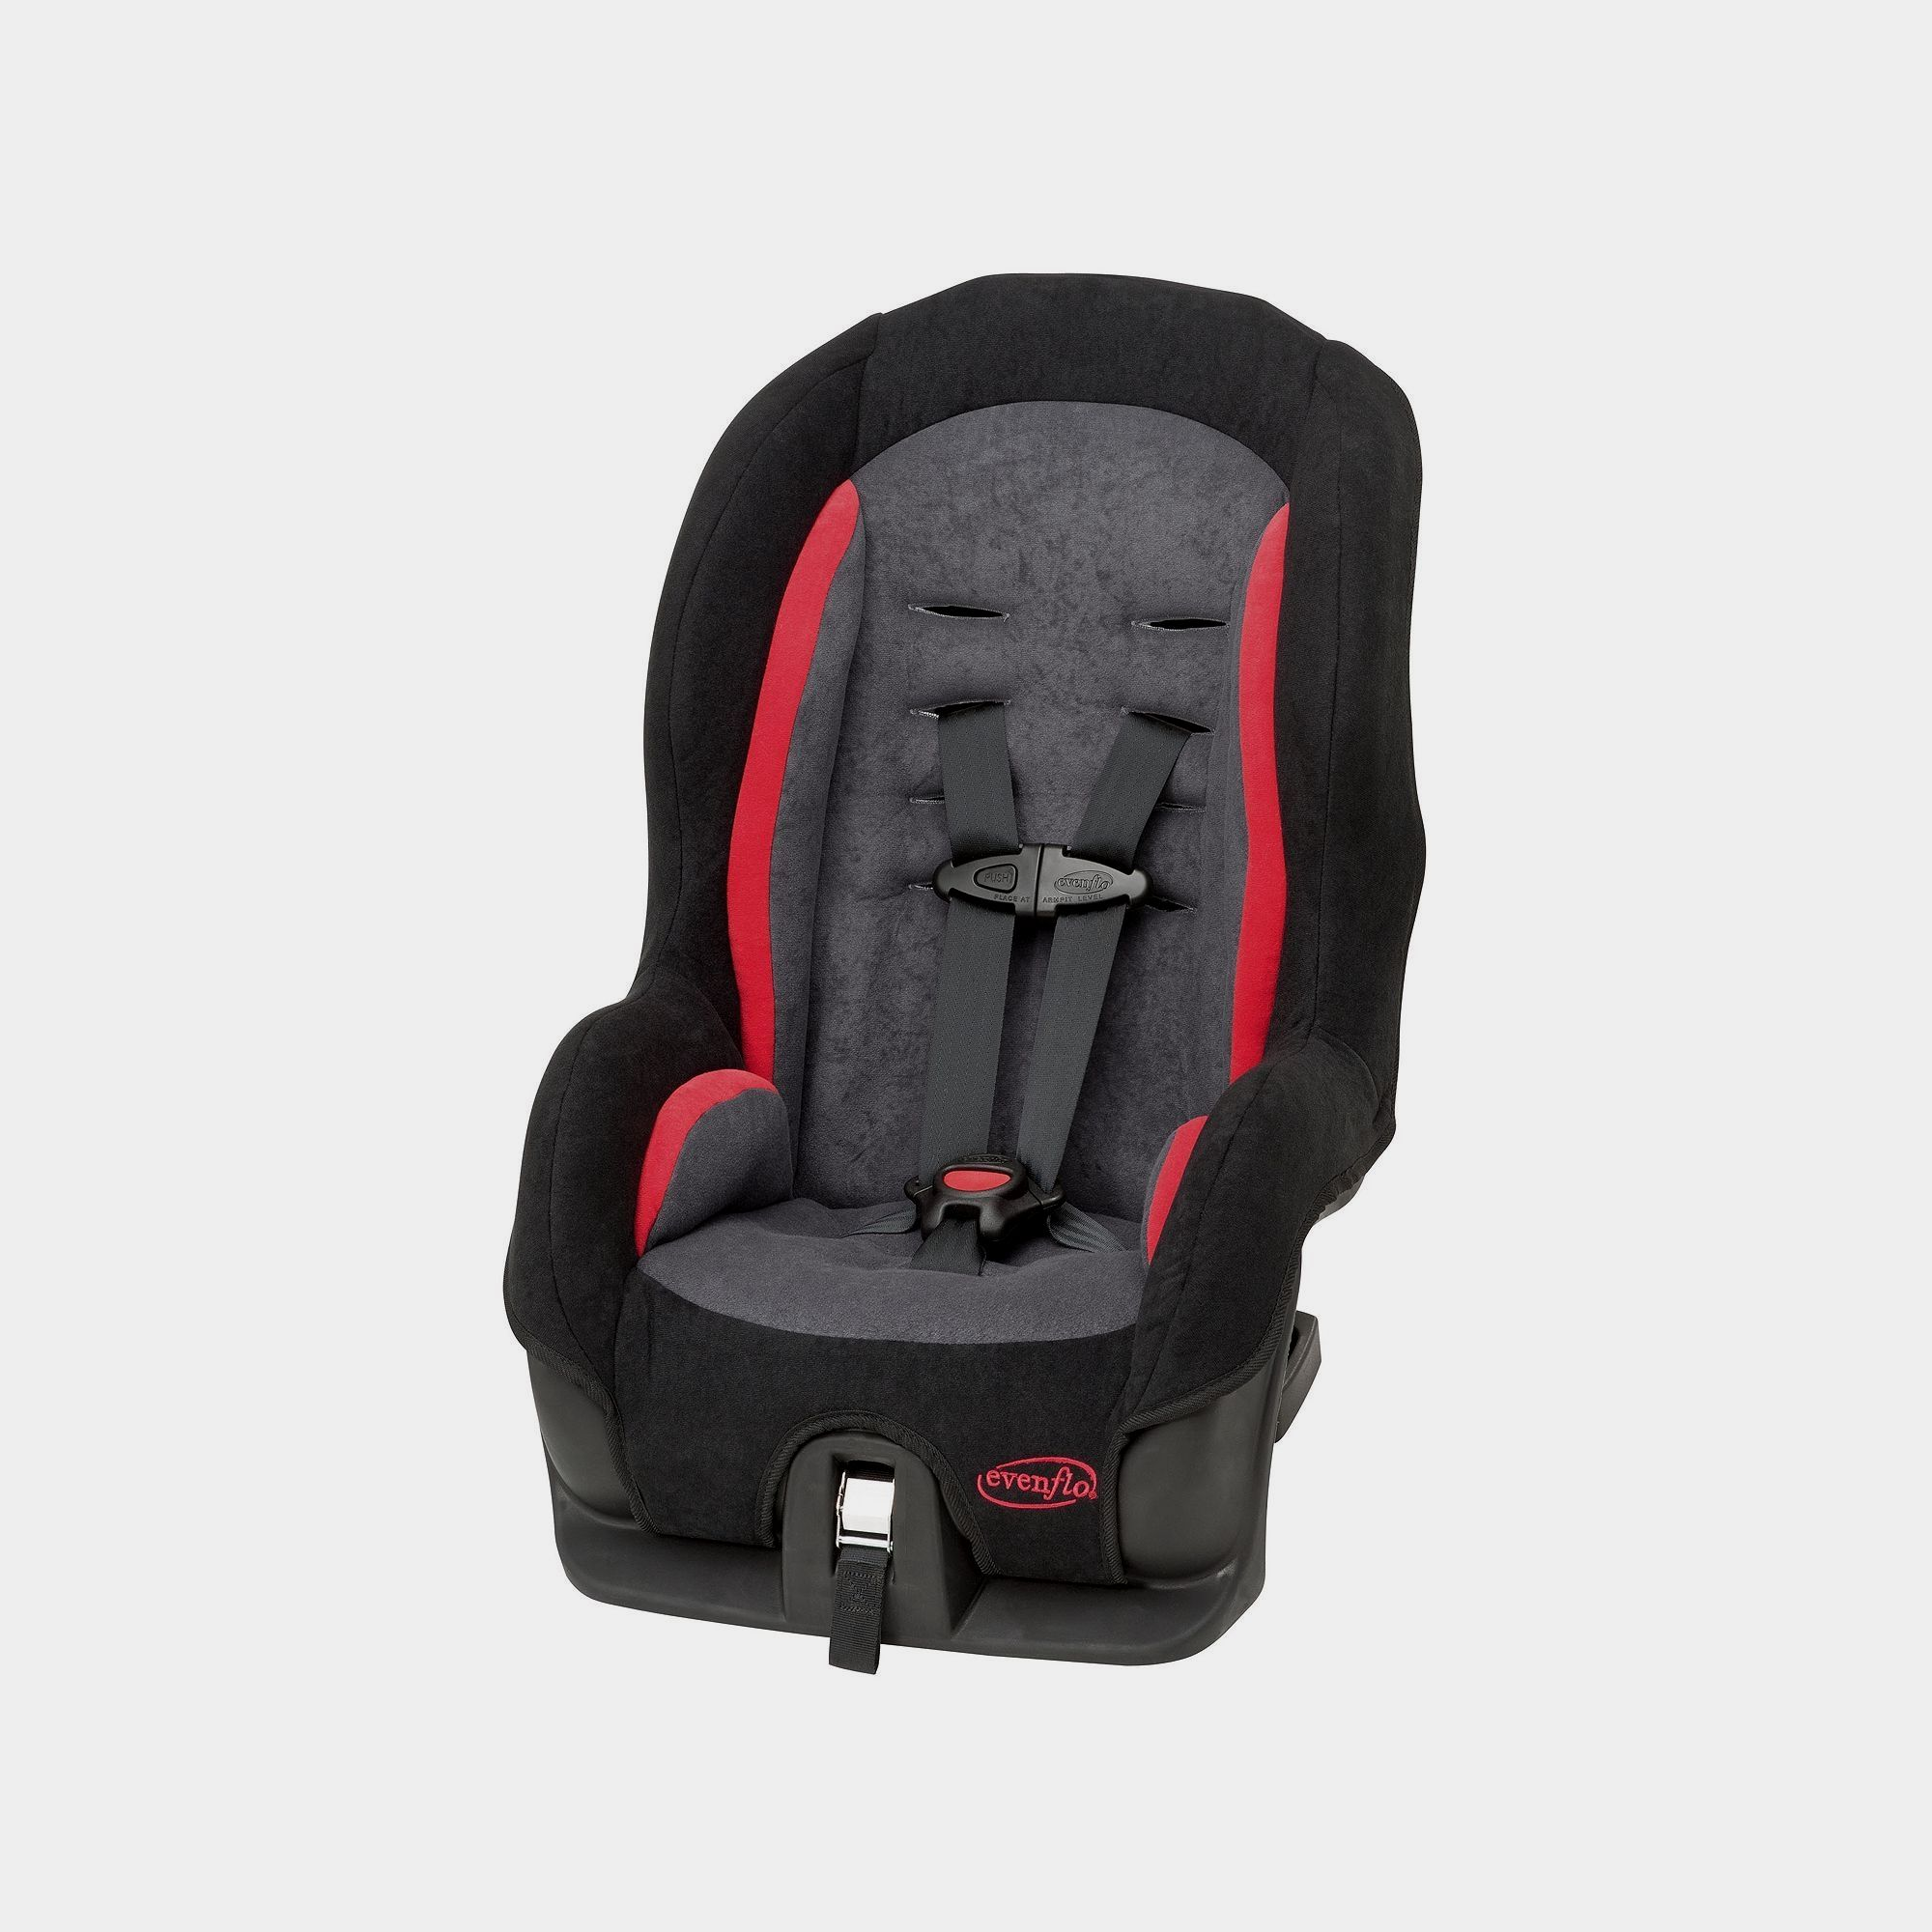 Baby Car Seatsbaby Seat Reviewsconvertible Seats